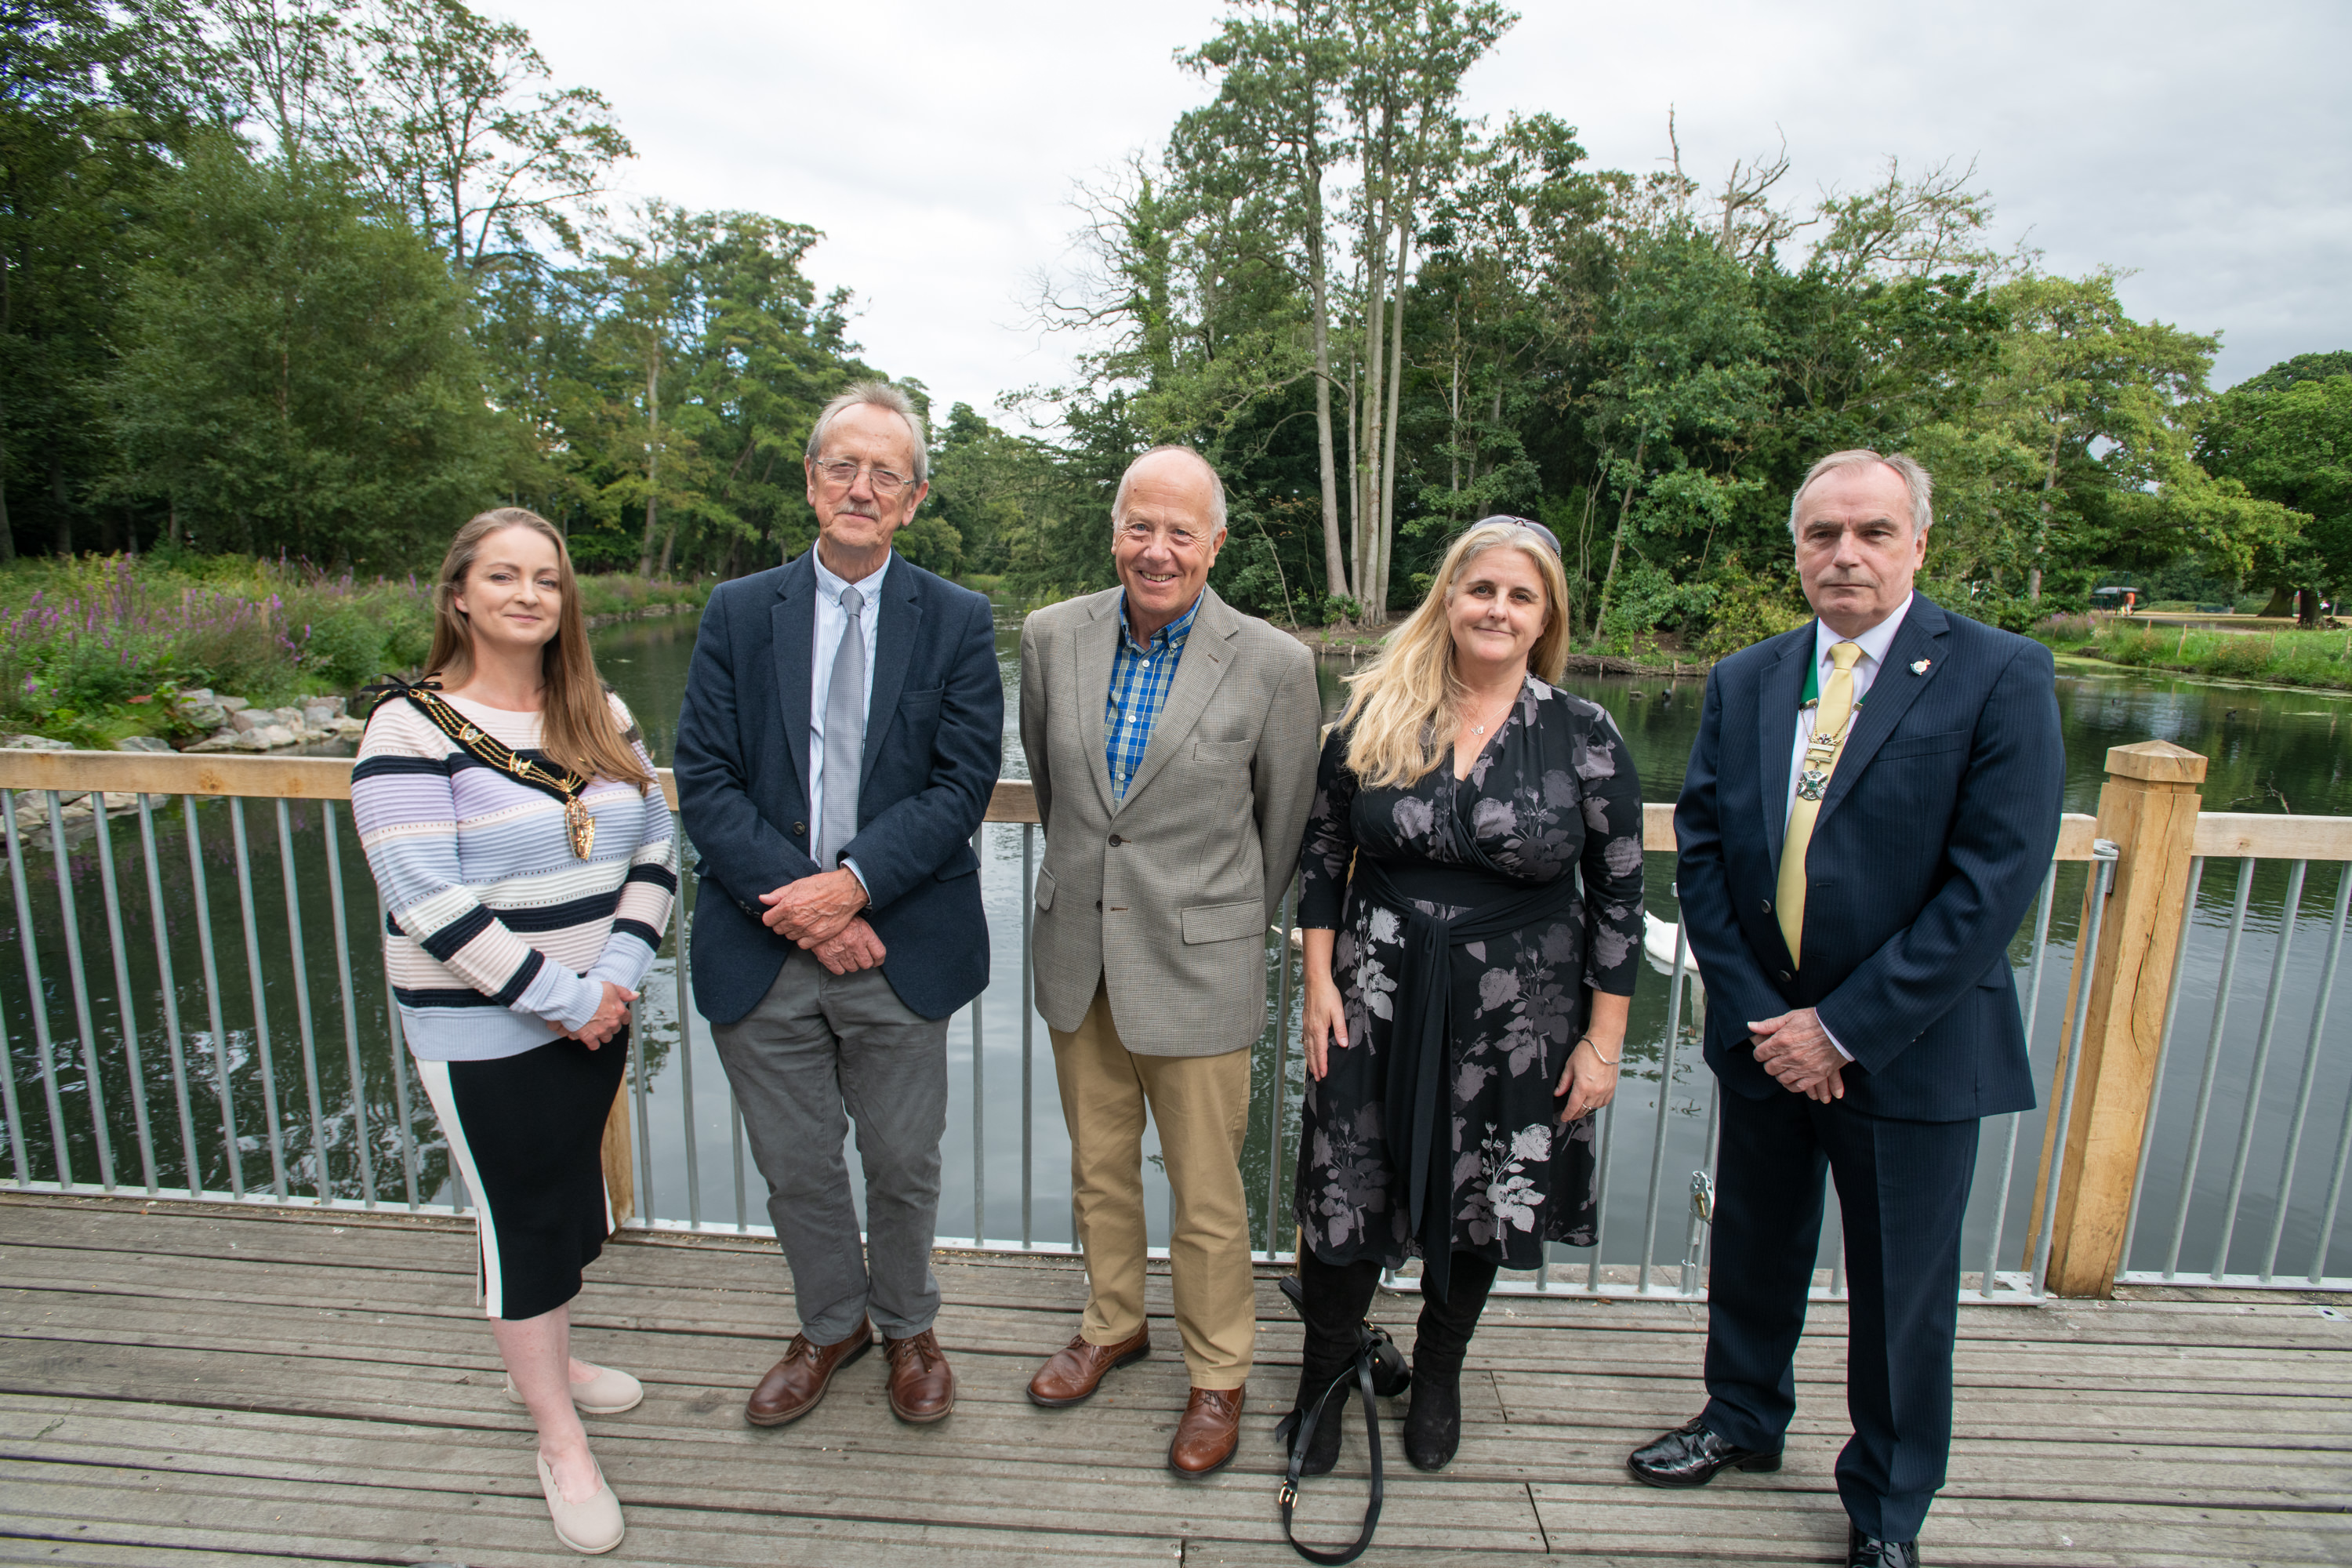 Members of City of Lincoln Council, the Mayor, Members from the Boultham Park Advisory Group and Members of the Lincolnshire Wildlife Trust at Boultham Park Lake